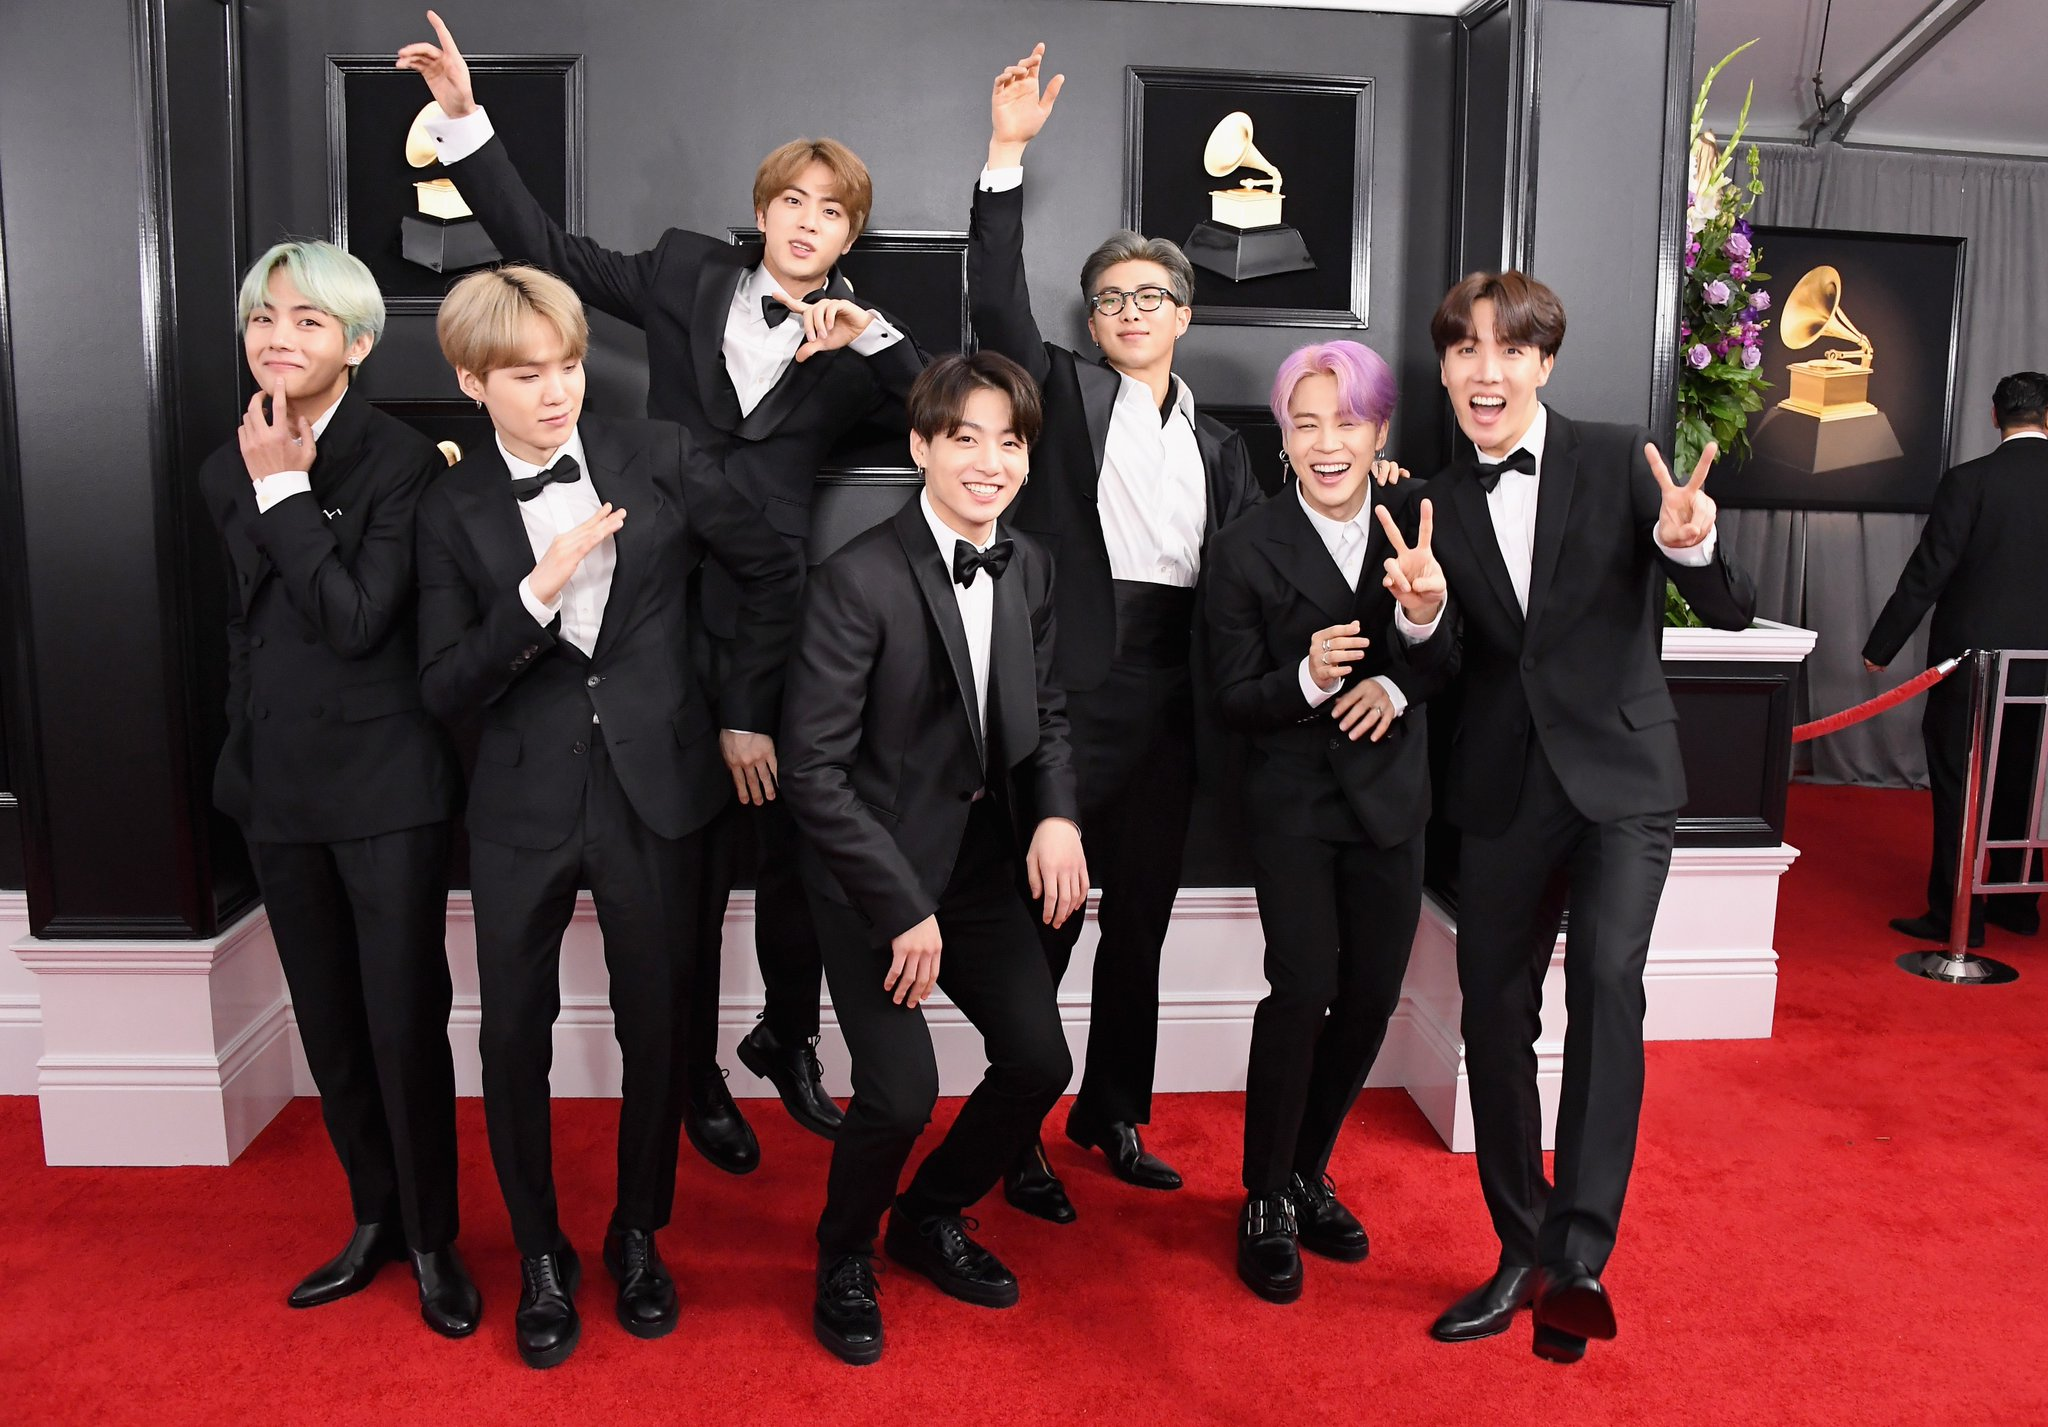 .@BTS_twt made #GRAMMYs history this year, here's how: https://t.co/vncoR63Ejm https://t.co/Lce0sV9GPU